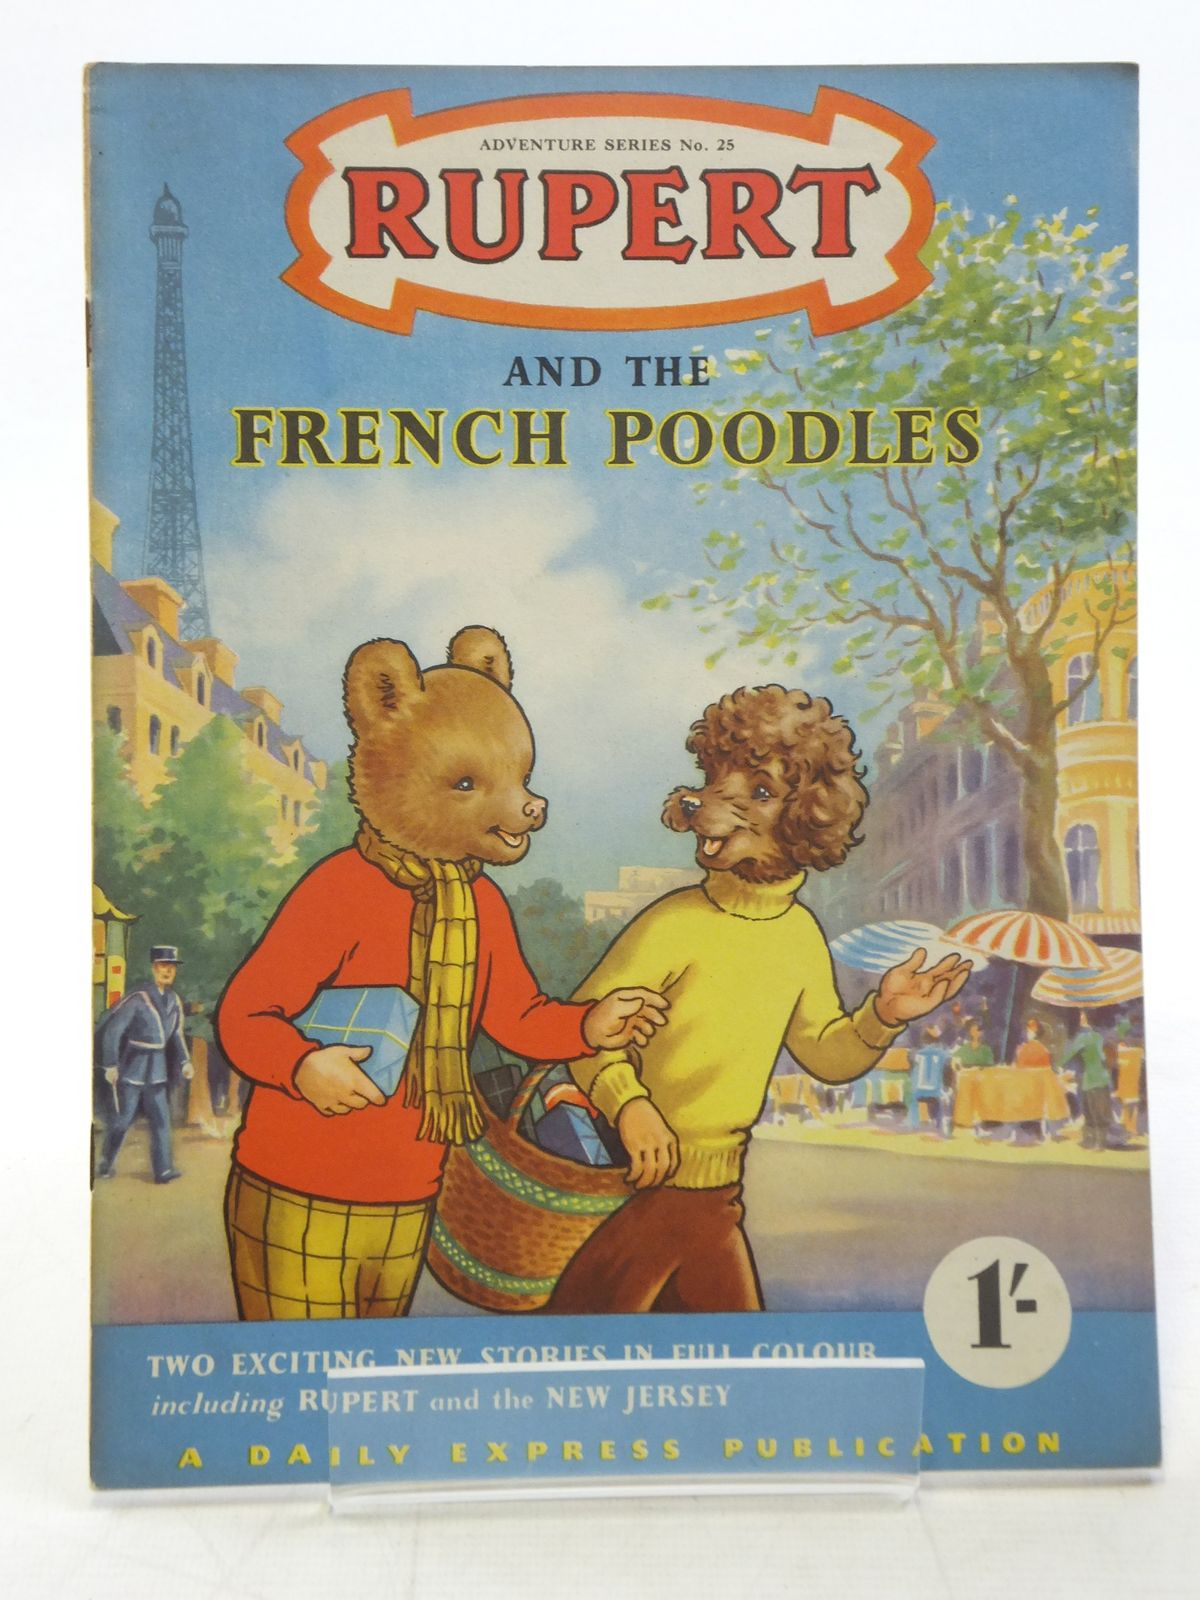 Photo of RUPERT ADVENTURE SERIES No. 25 - RUPERT AND THE FRENCH POODLES written by Bestall, Alfred published by Daily Express (STOCK CODE: 2117171)  for sale by Stella & Rose's Books